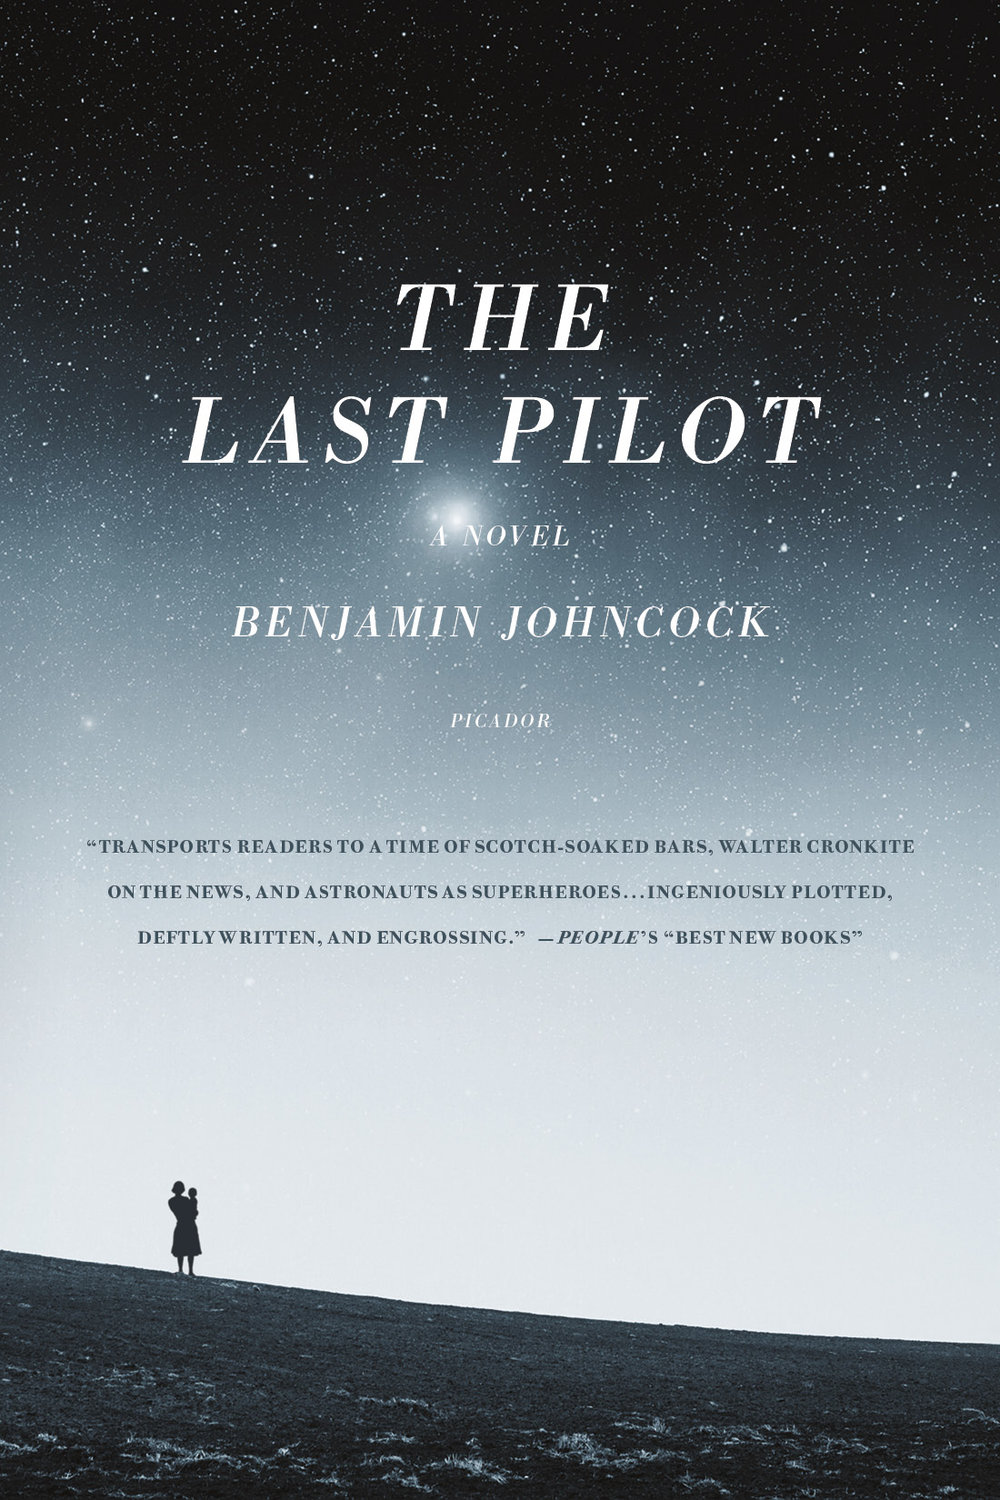 THE LAST PILOT Picador ppbk cover.jpg